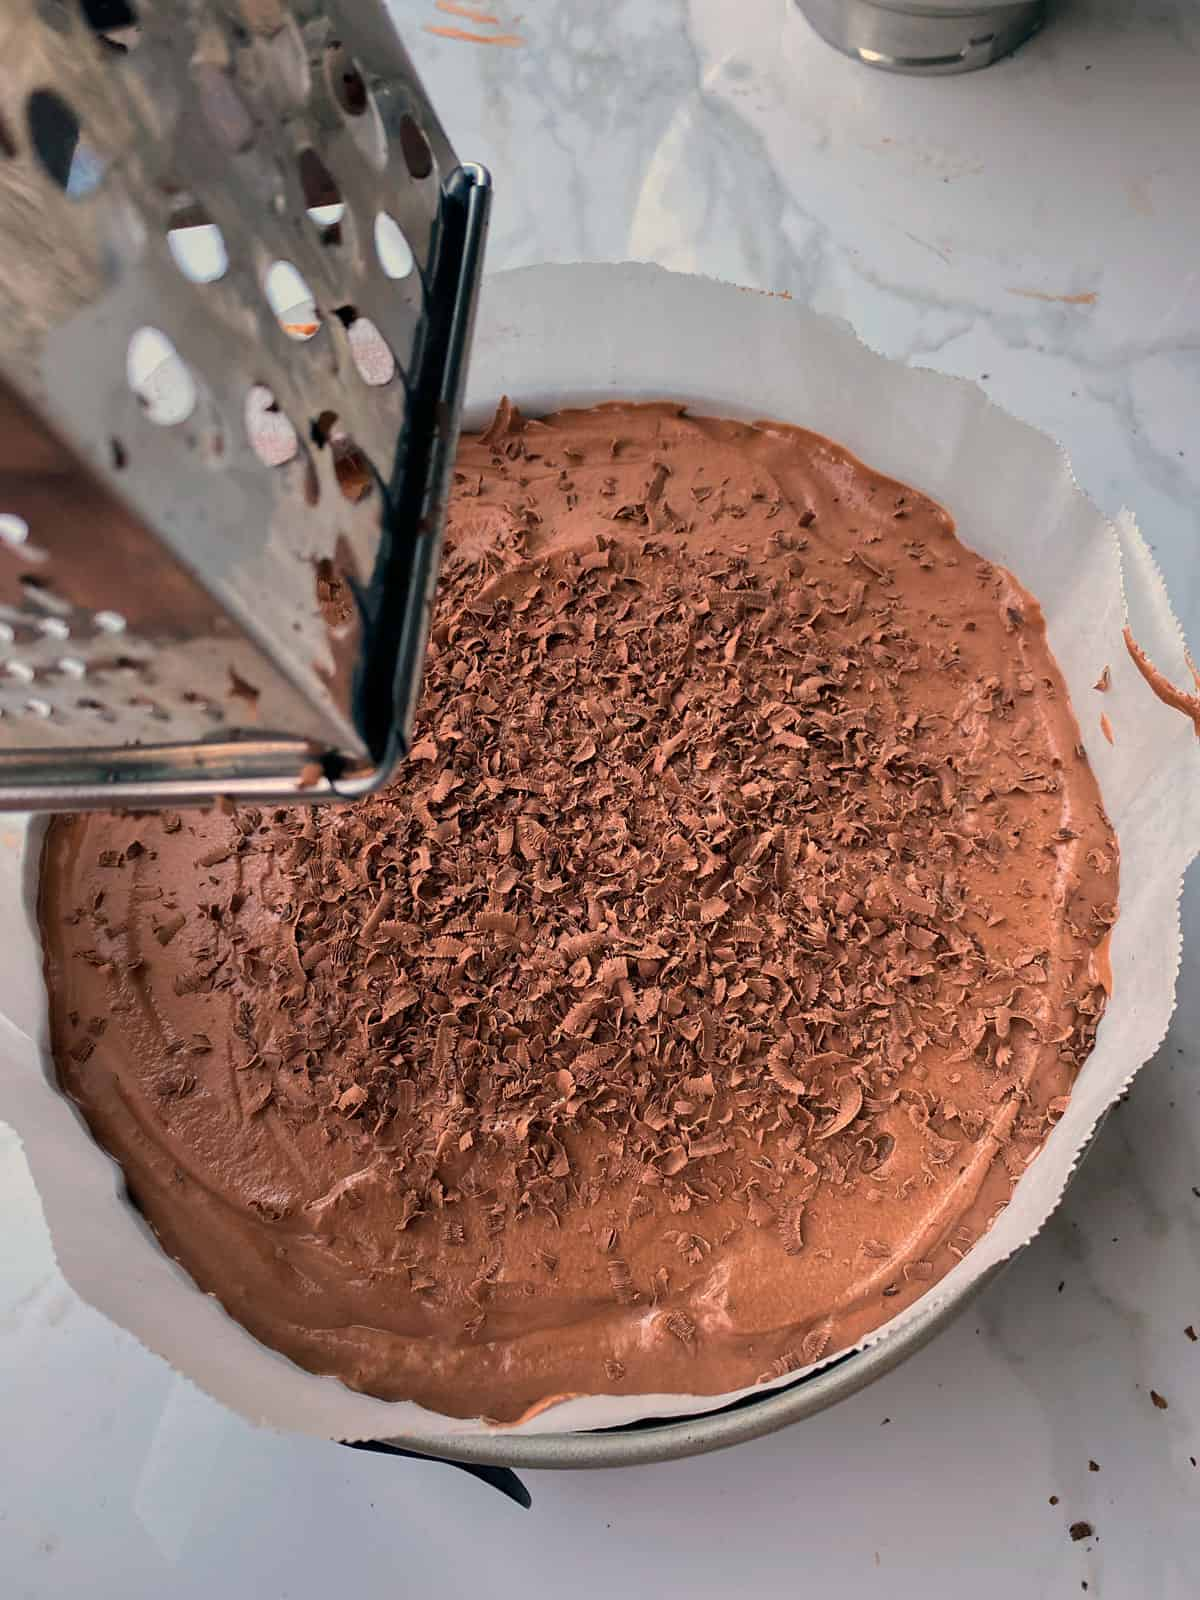 Chocolate being grated onto the finished chocolate mousse cake in the lined tin.